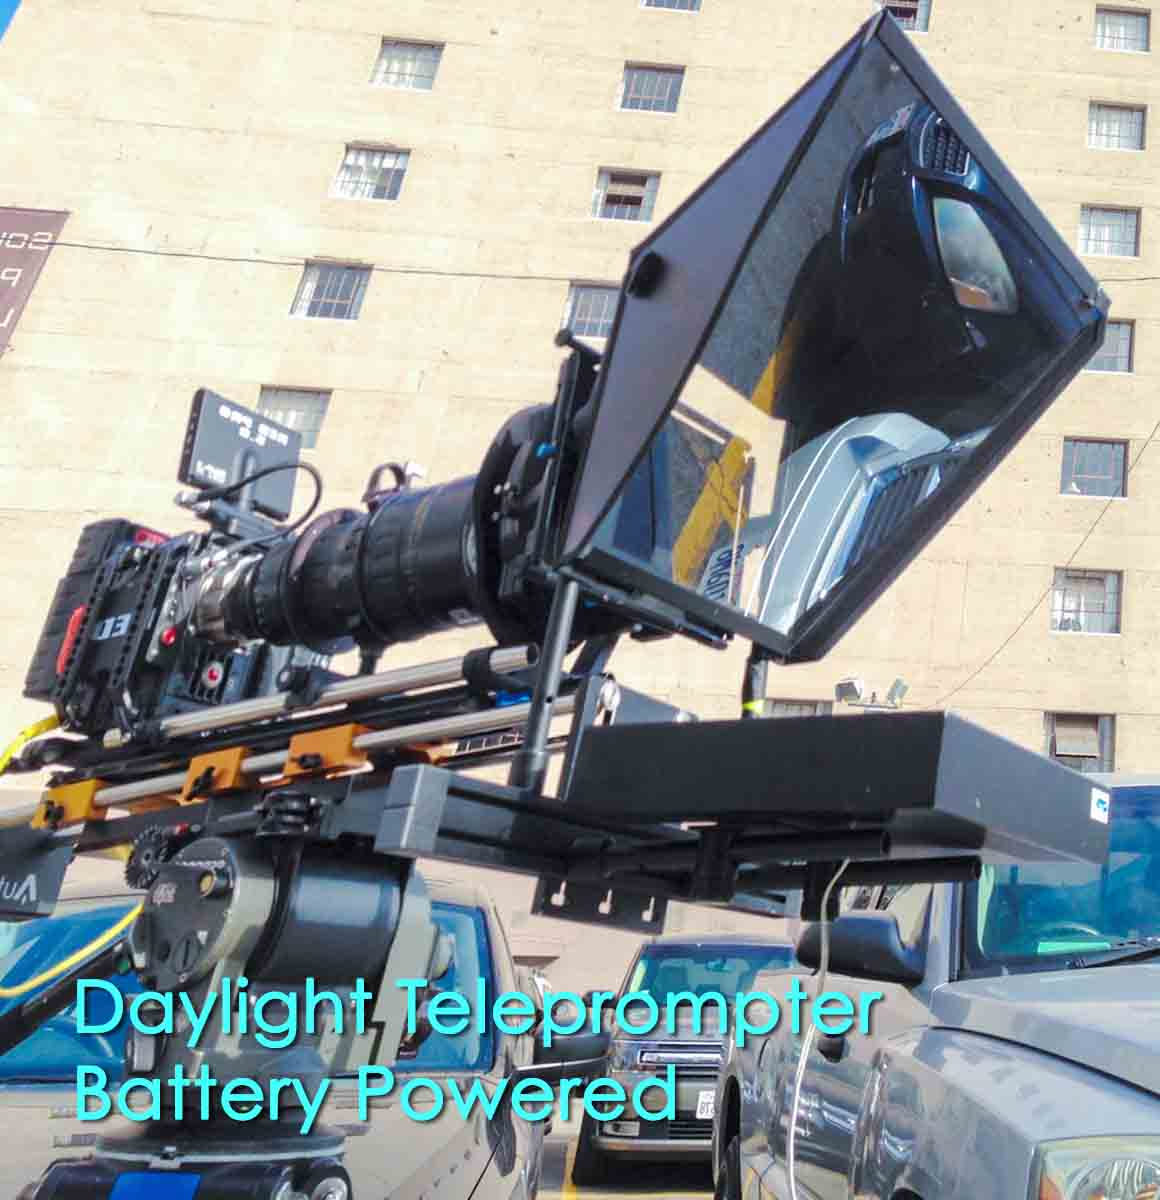 Daylight Teleprompter Battery Powered